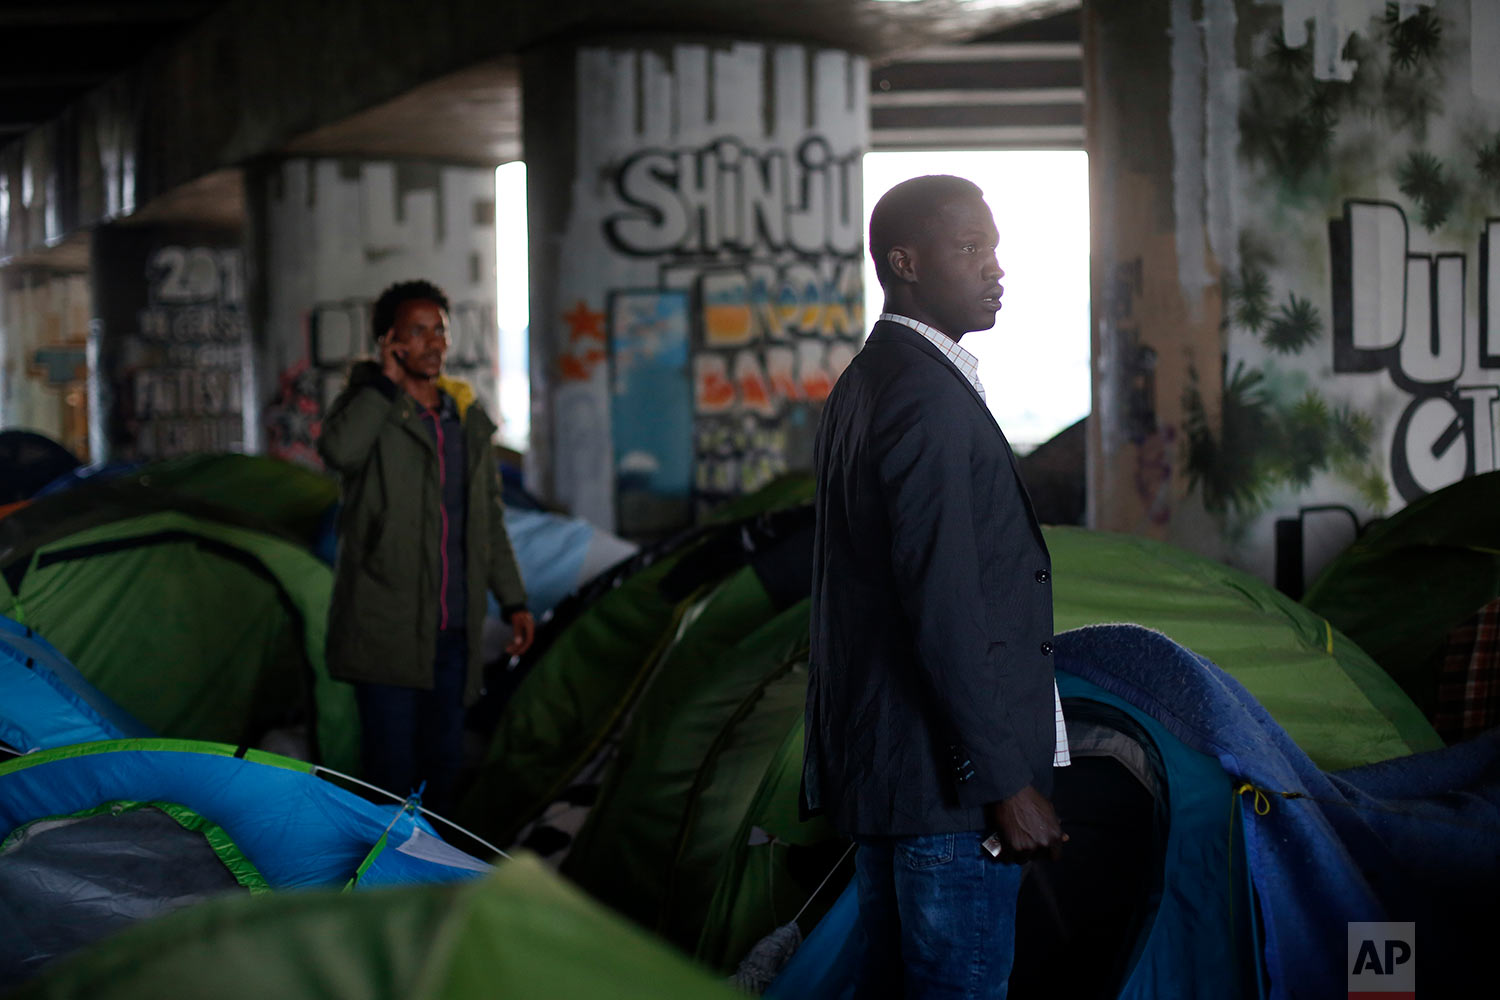 Migrants stand in a makeshift camp during its evacuation, in Paris, Wednesday, May 30, 2018. (AP Photo/Thibault Camus)